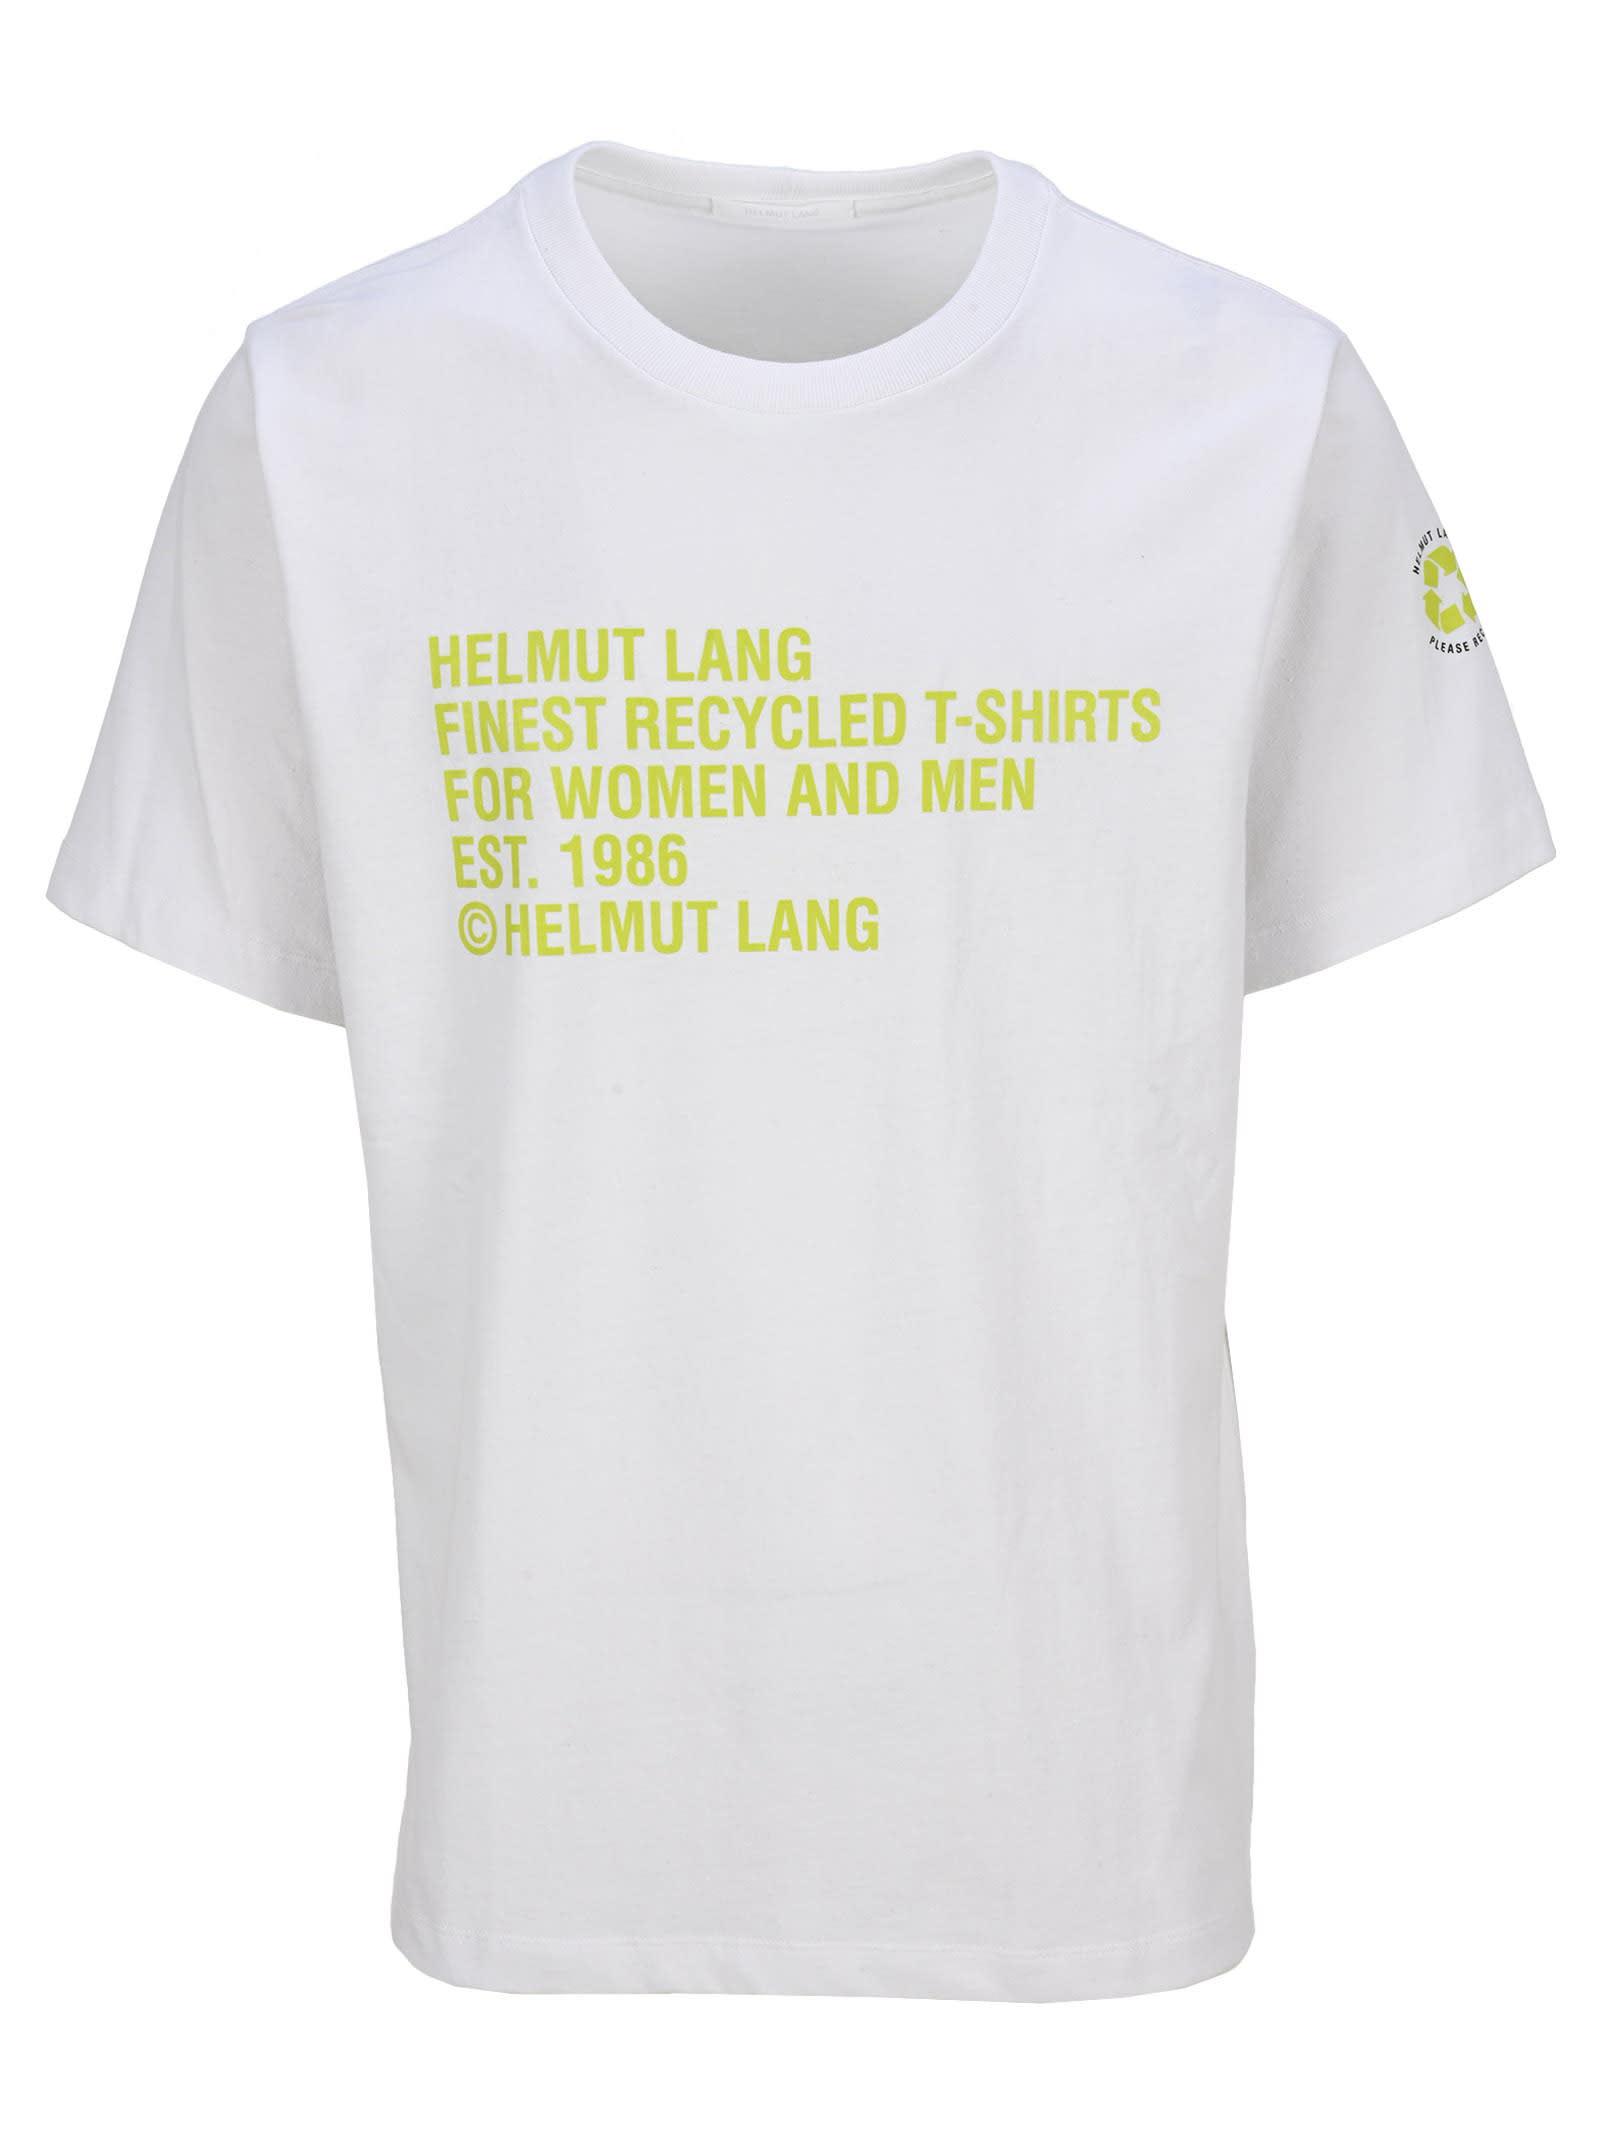 Helmut Lang Recycled T-shirt